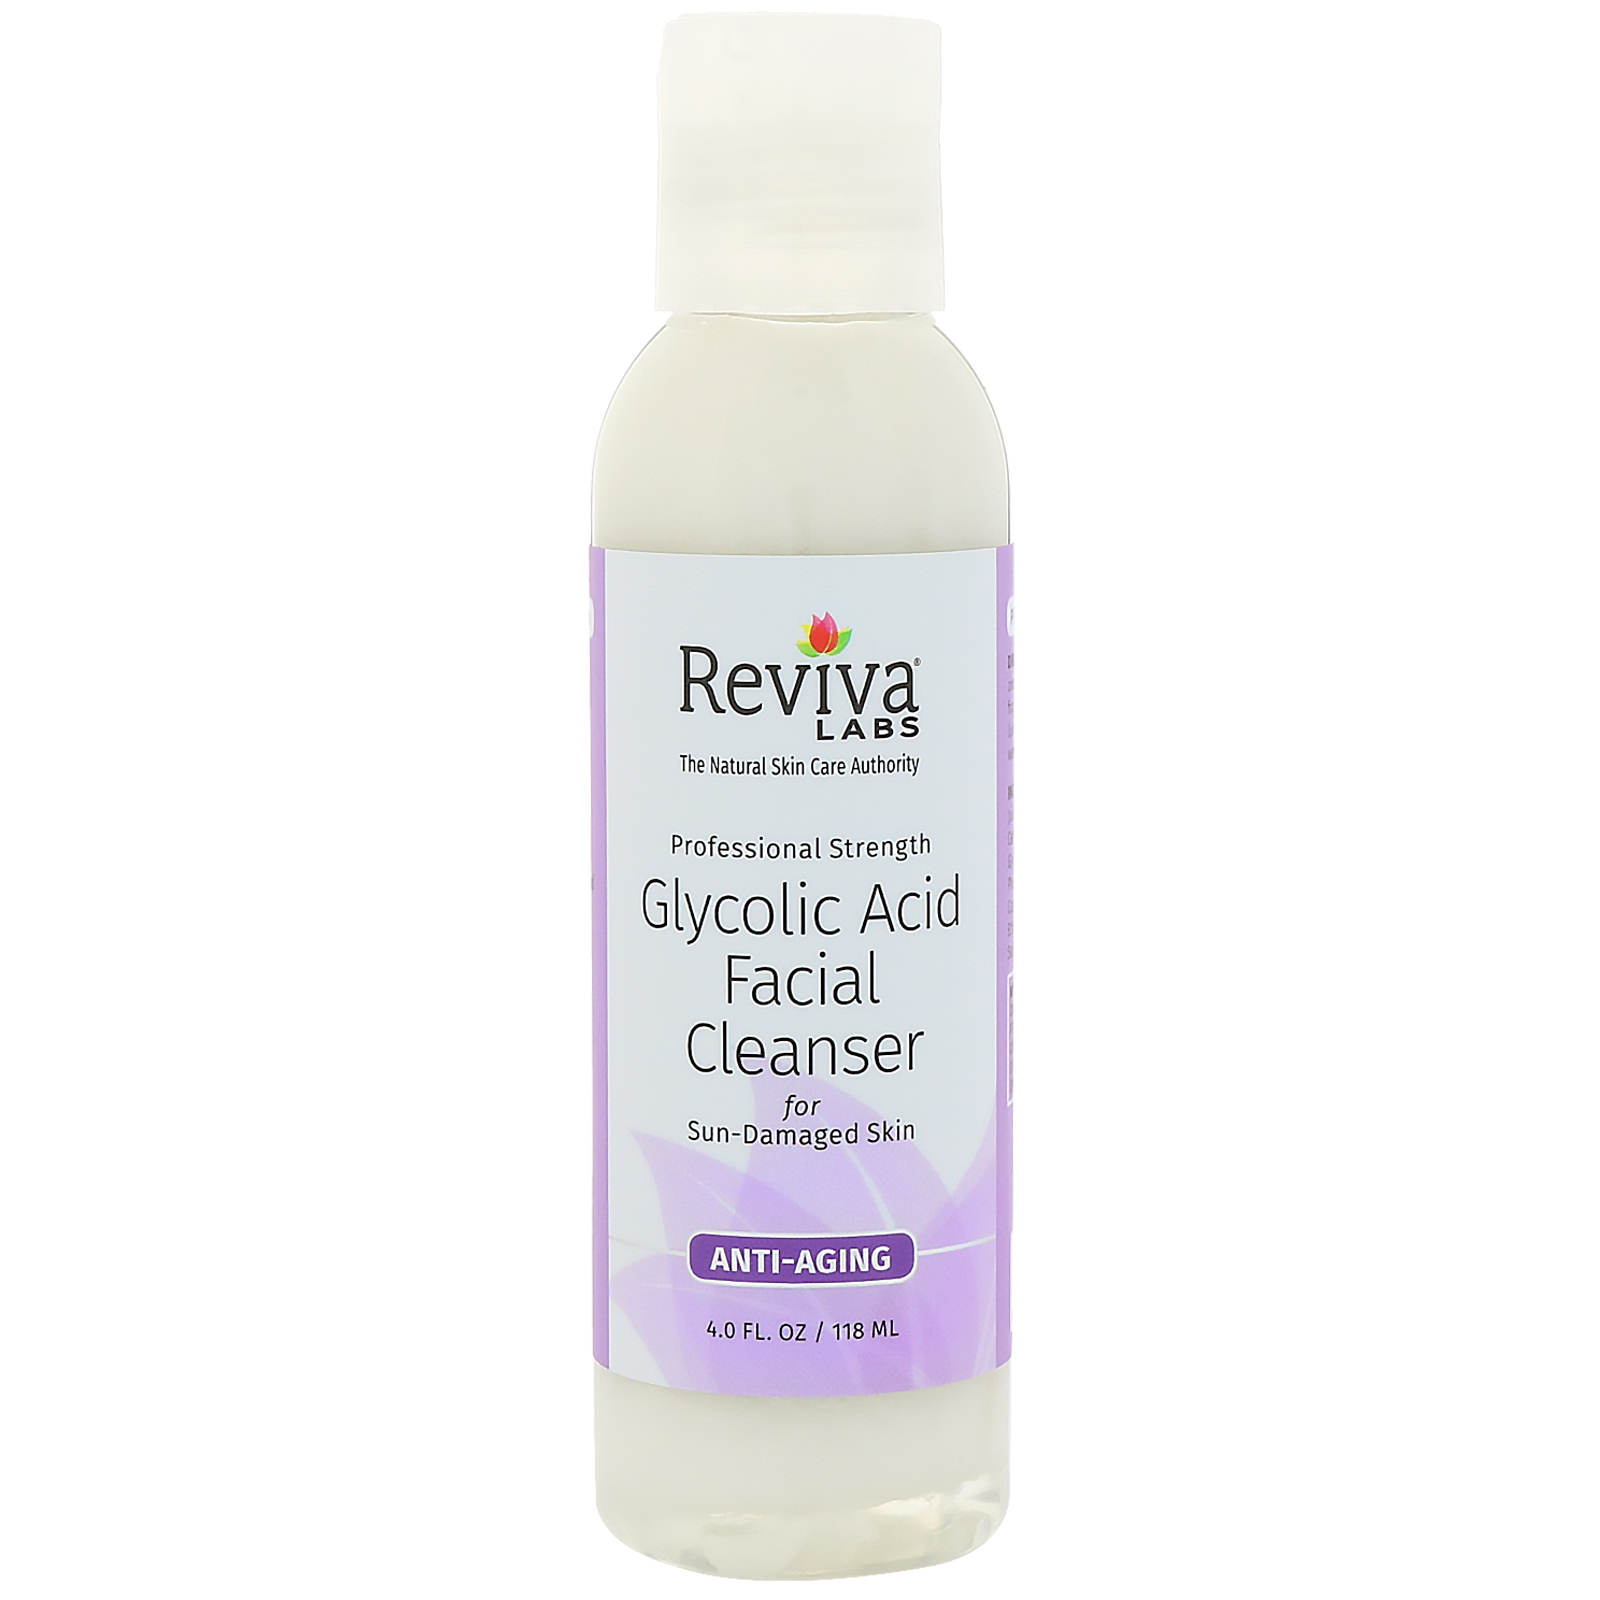 Does facial glycolic expire